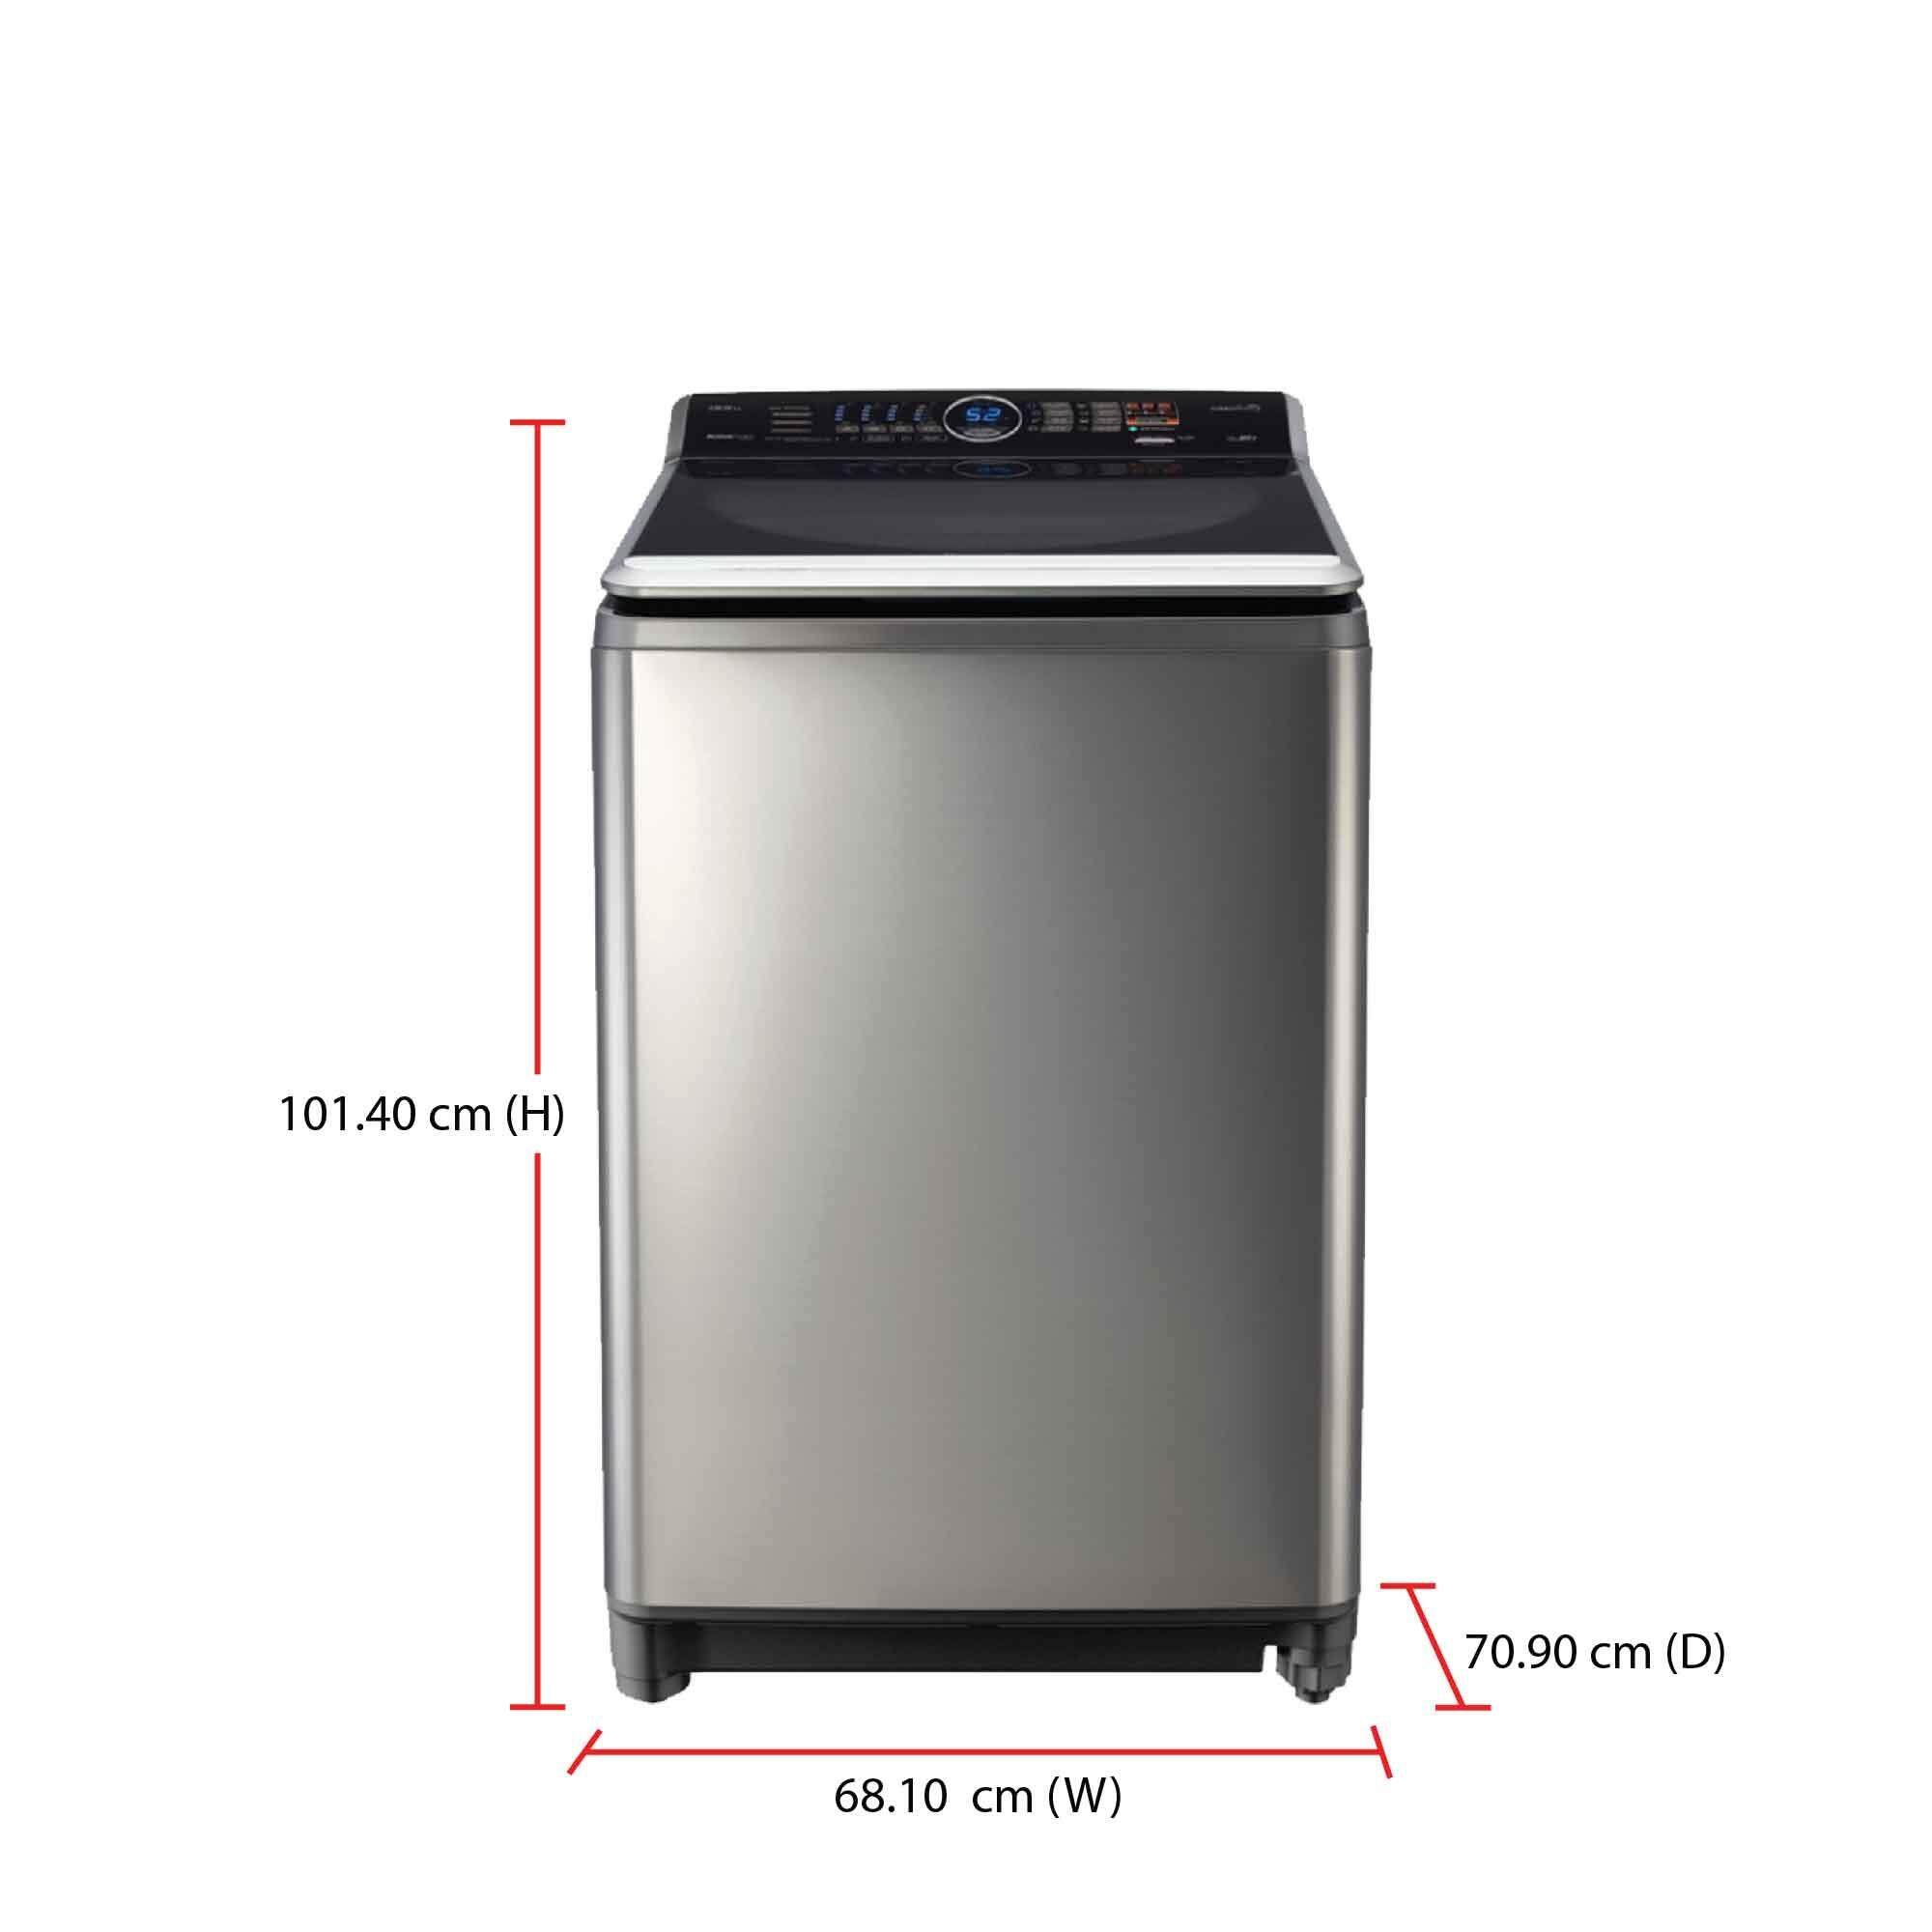 Panasonic ECONAVI Washing Machine NA-F115X4 (11.5kg) 2018 New Model